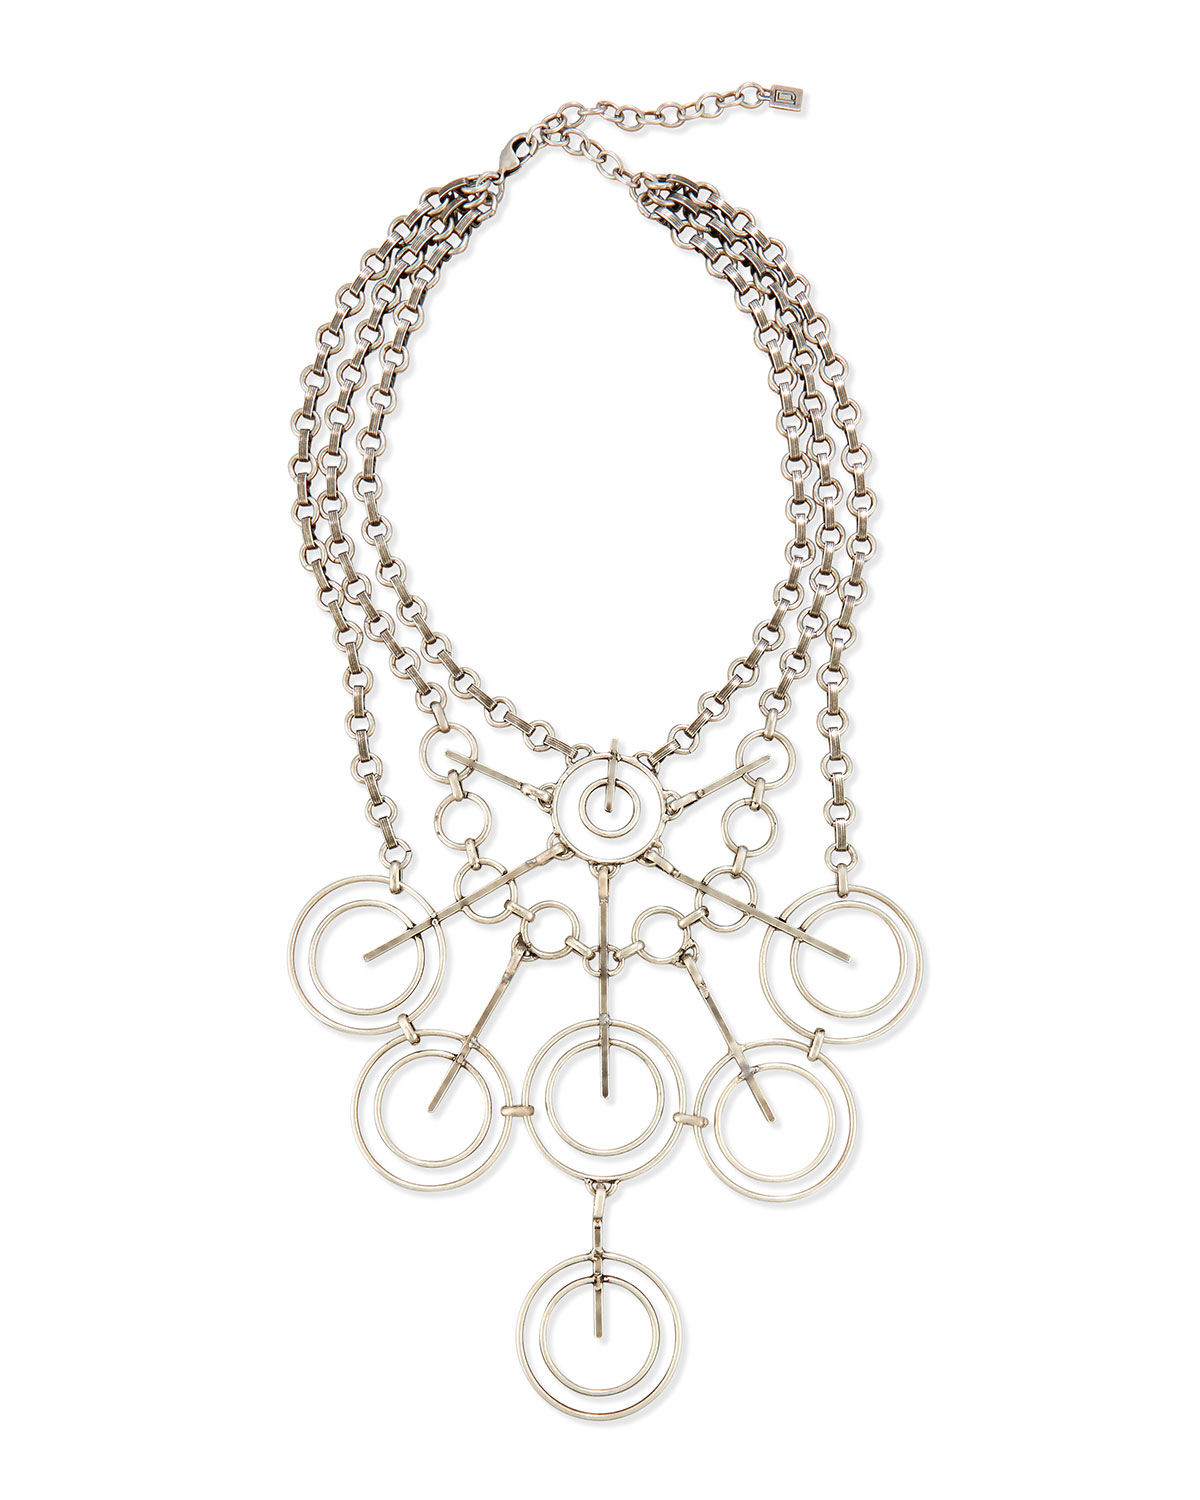 Aquila Statement Necklace